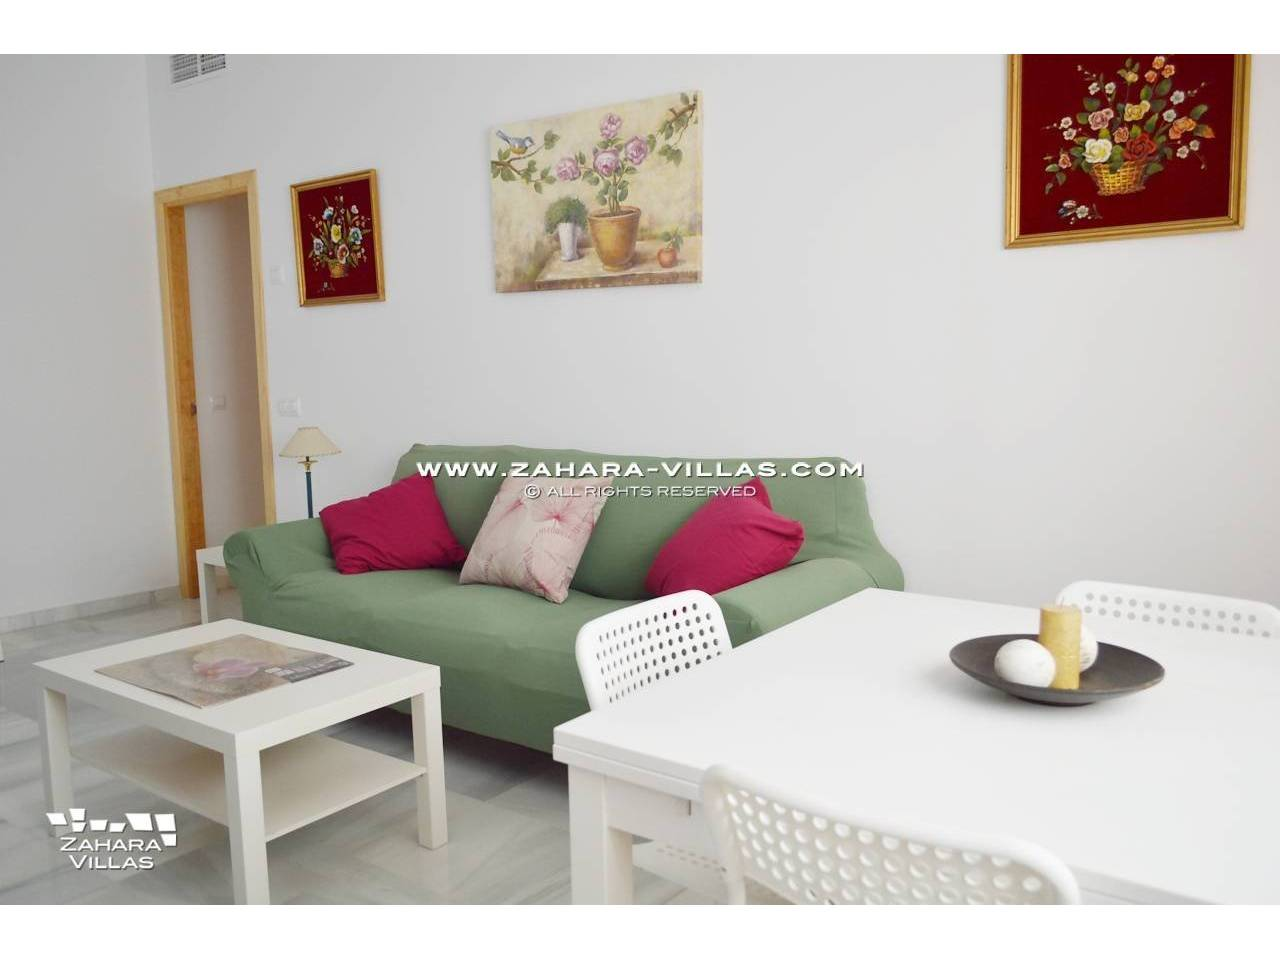 Imagen 3 de Apartment for sale 50 meters from the beach